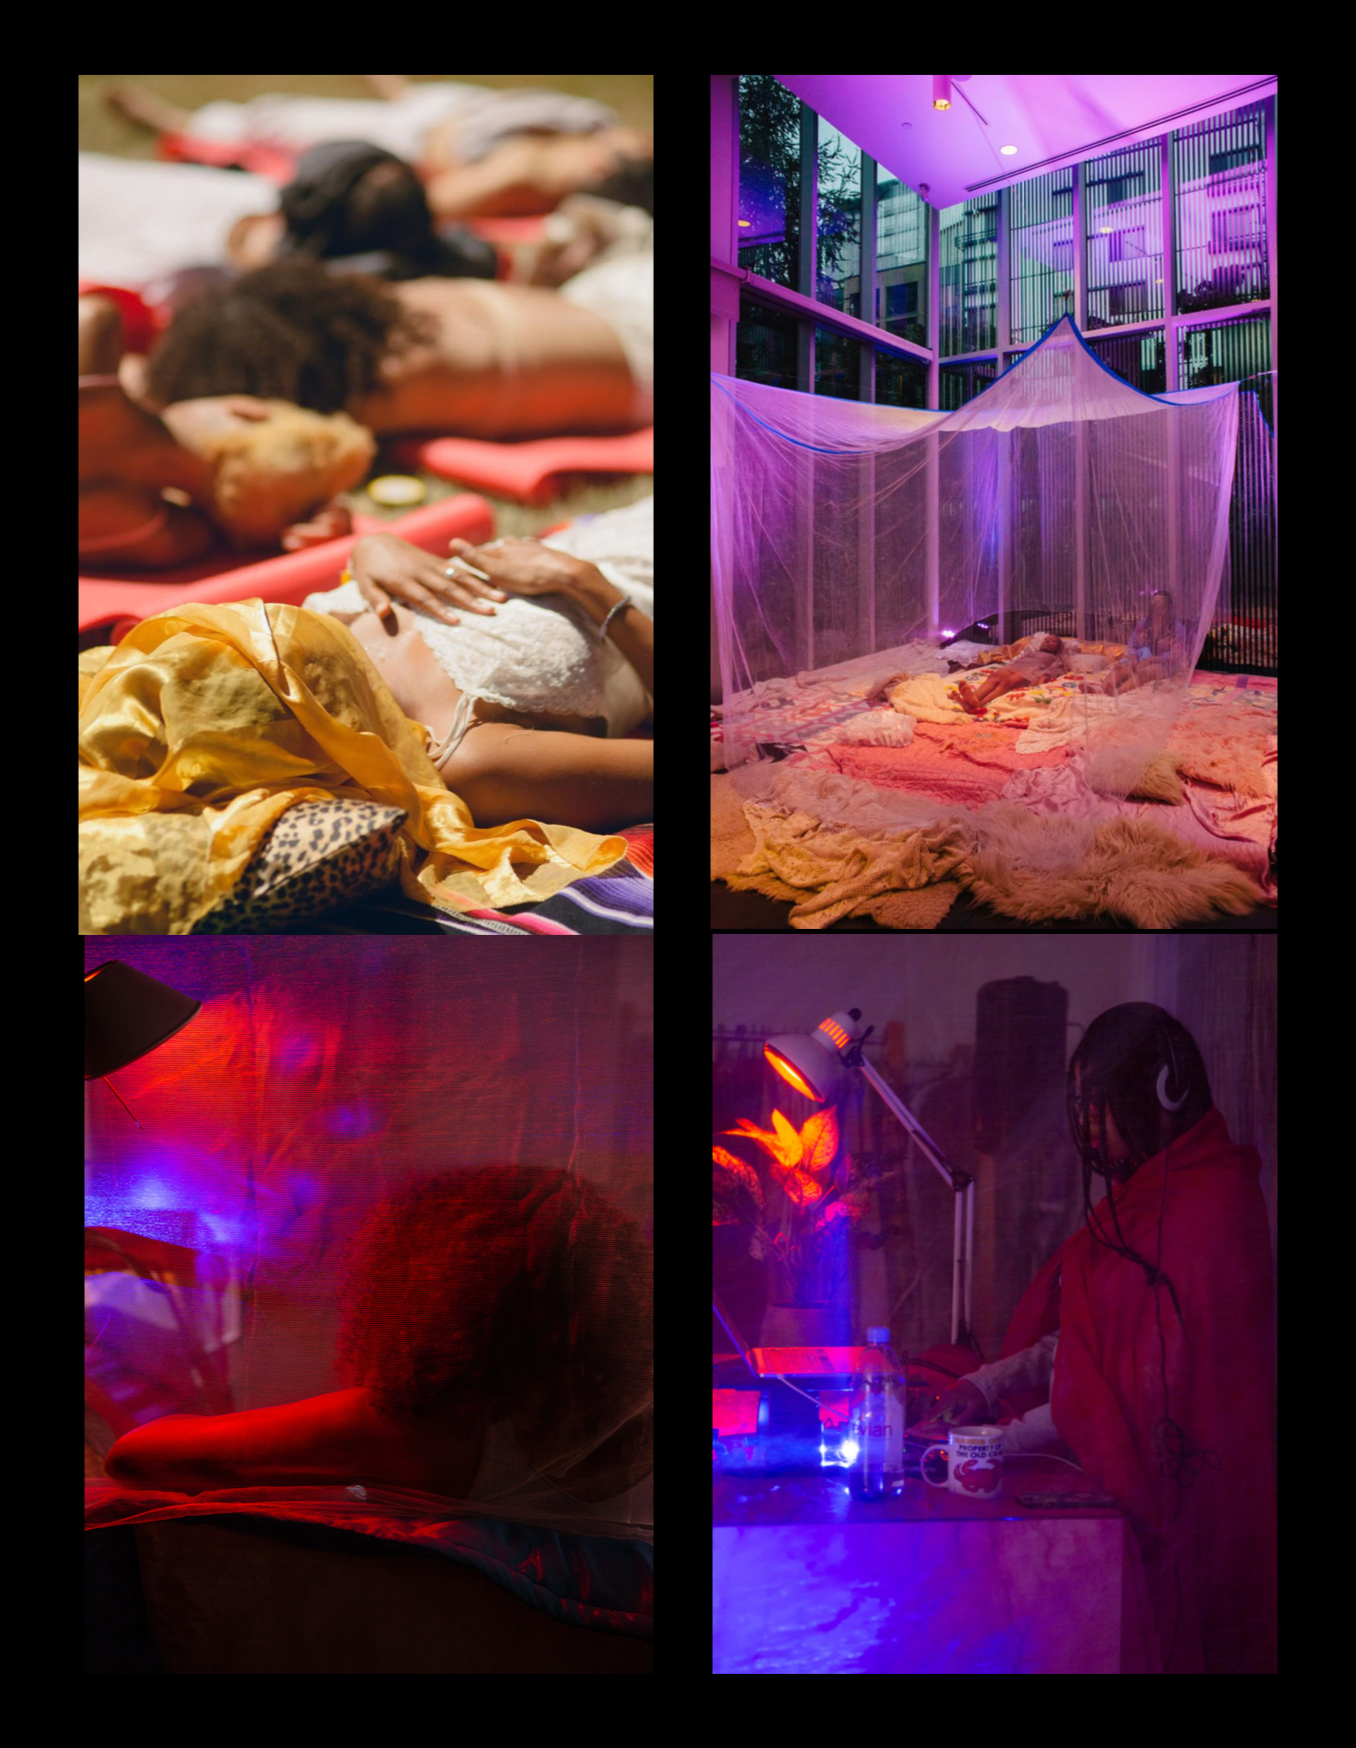 Top Left : Meditative sleep in Cal-Anderson Park Seattle; Top Right: Mia Imani Harrison and JOY MA in sleep protest at Seattle Art Museum's Olympic Park Sculpture; Bottom Left: Participant resting on sleep pads; Bottom Right: JOY MA playing sounds for participants during performance at Prairie Underground in Seattle.